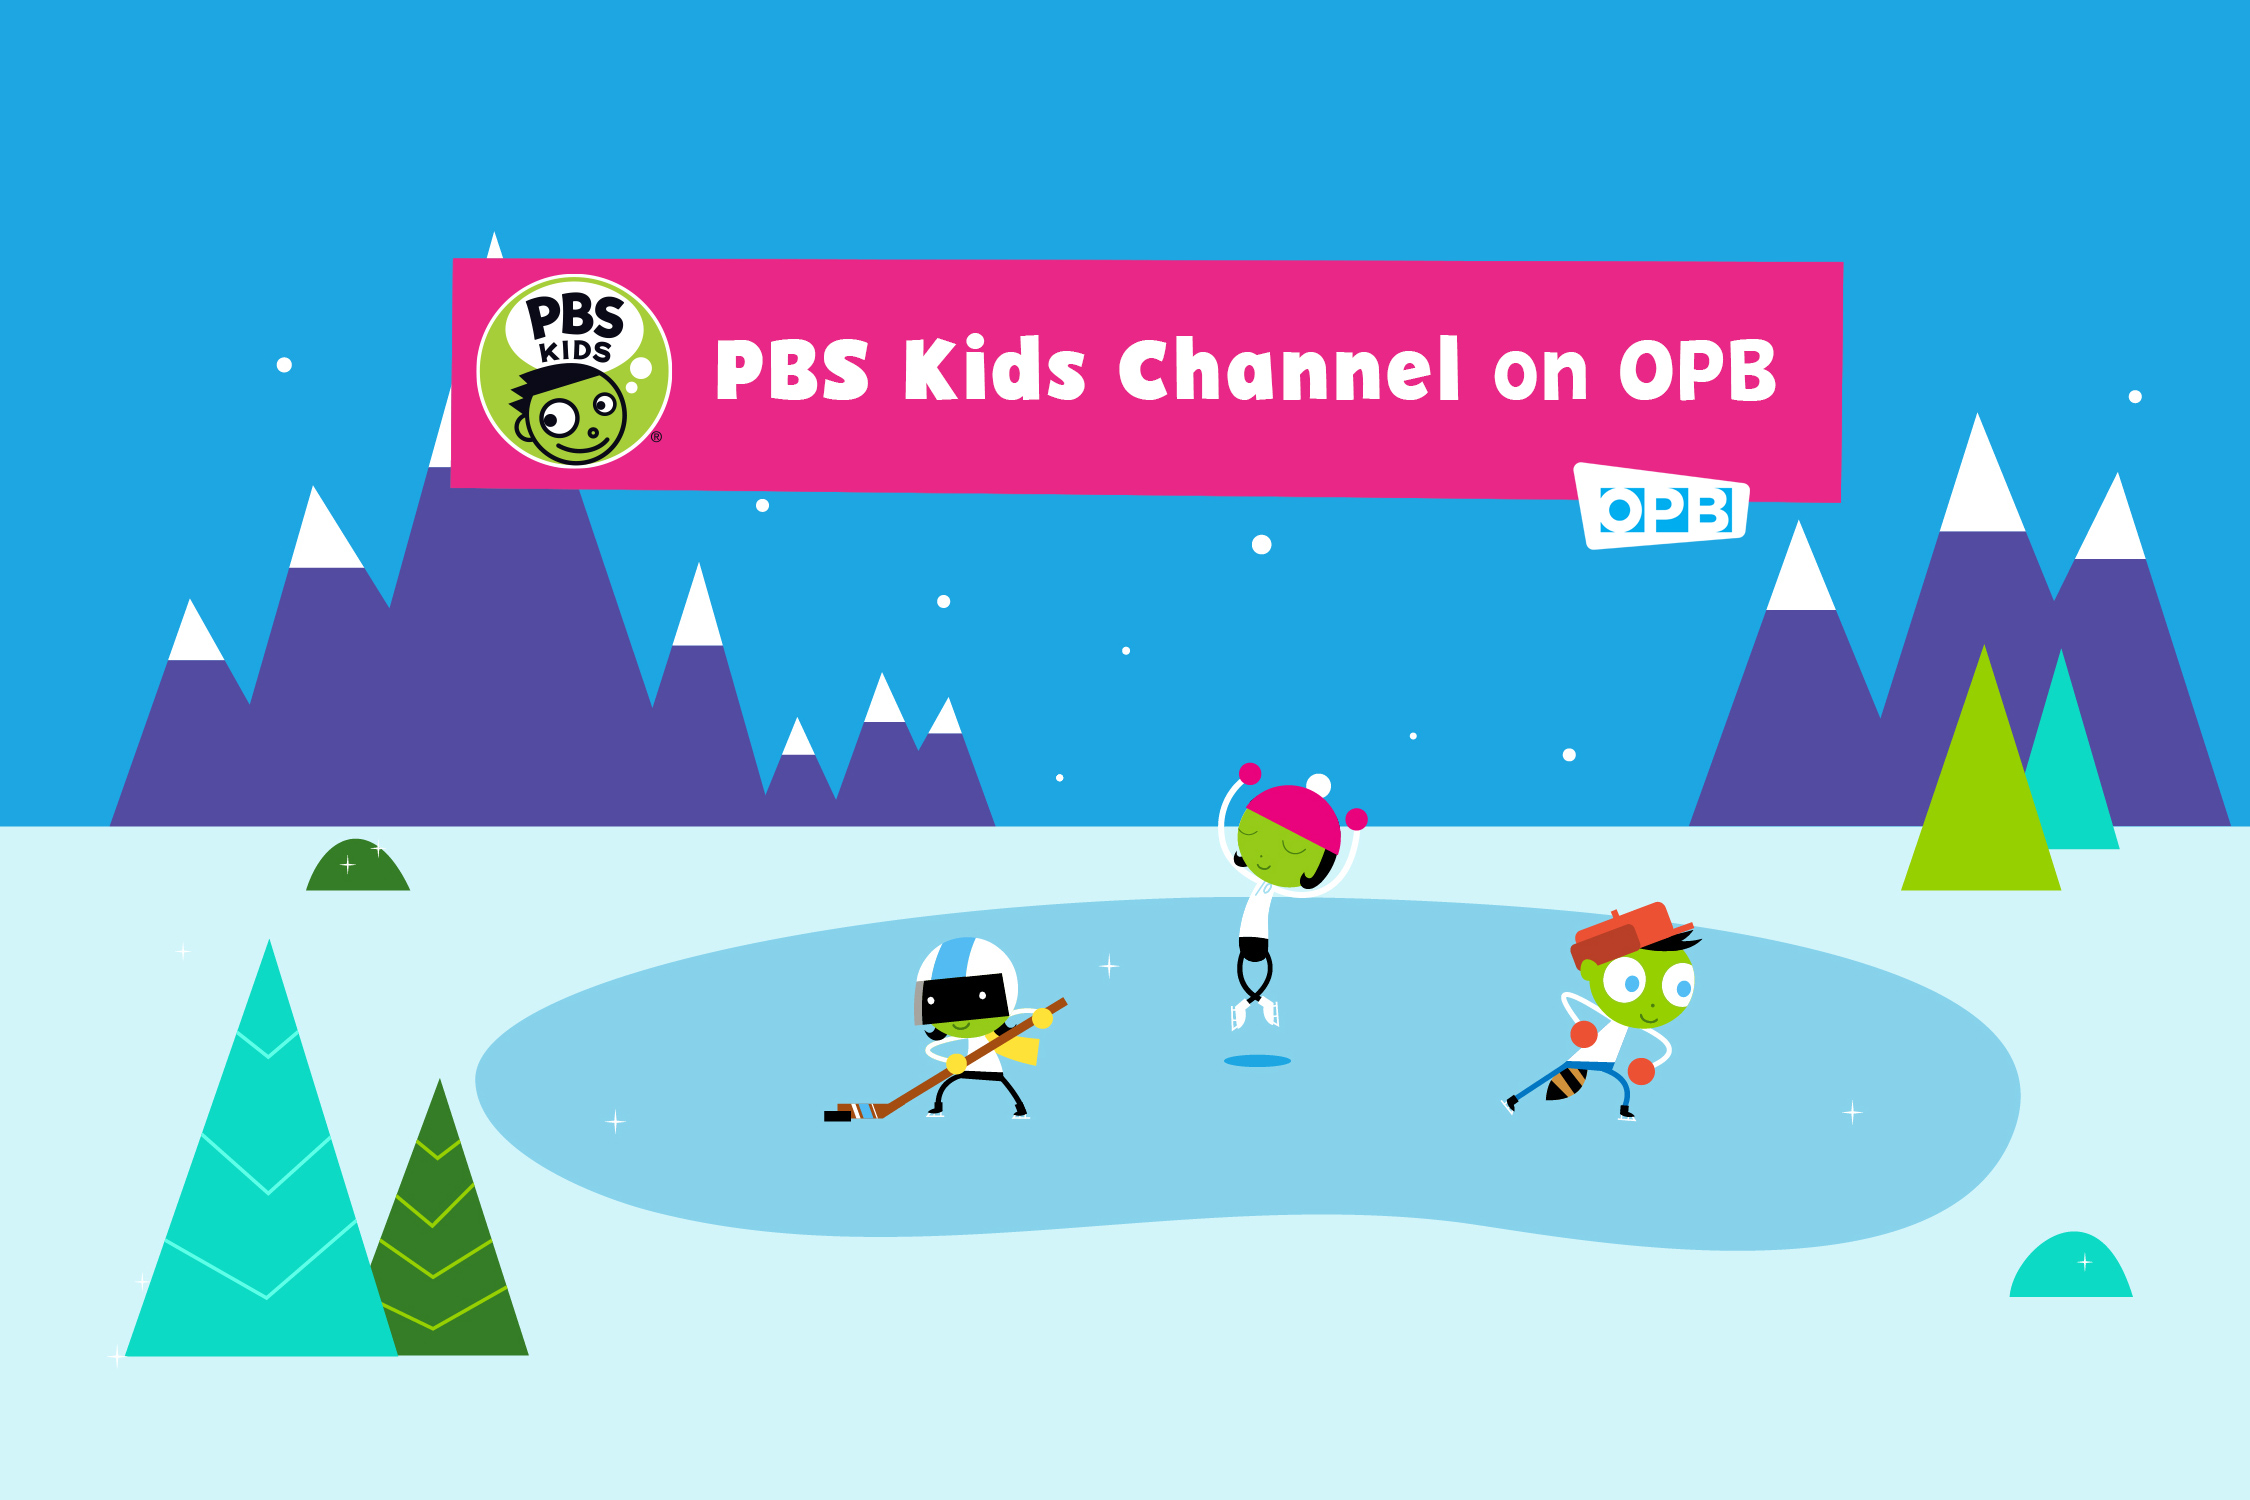 opb expands its television channel lineup, offering greater access